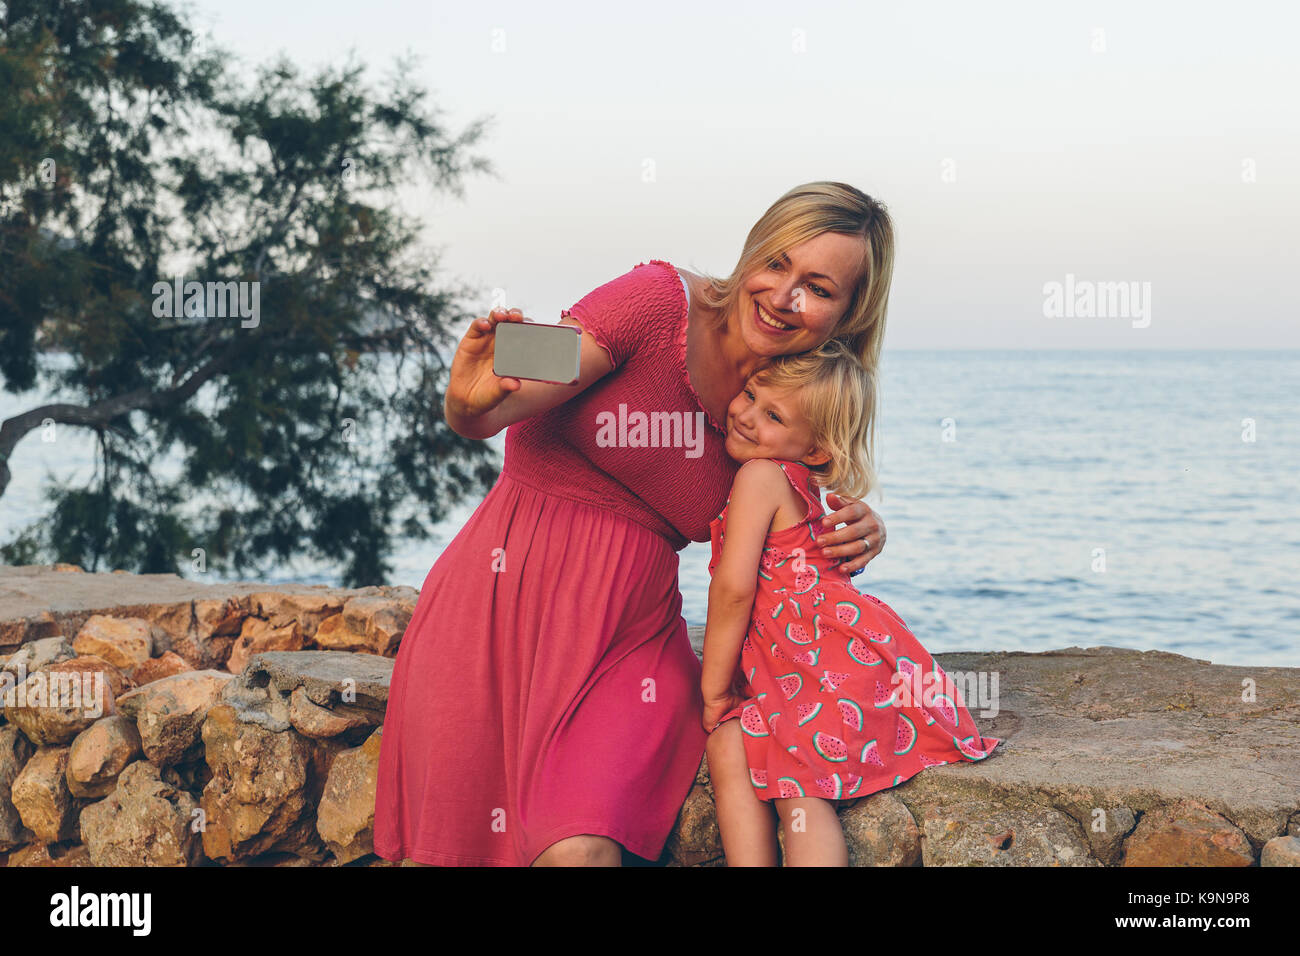 Mother and daughter taking a selfie with a mobile phone in front of the sea. - Stock Image